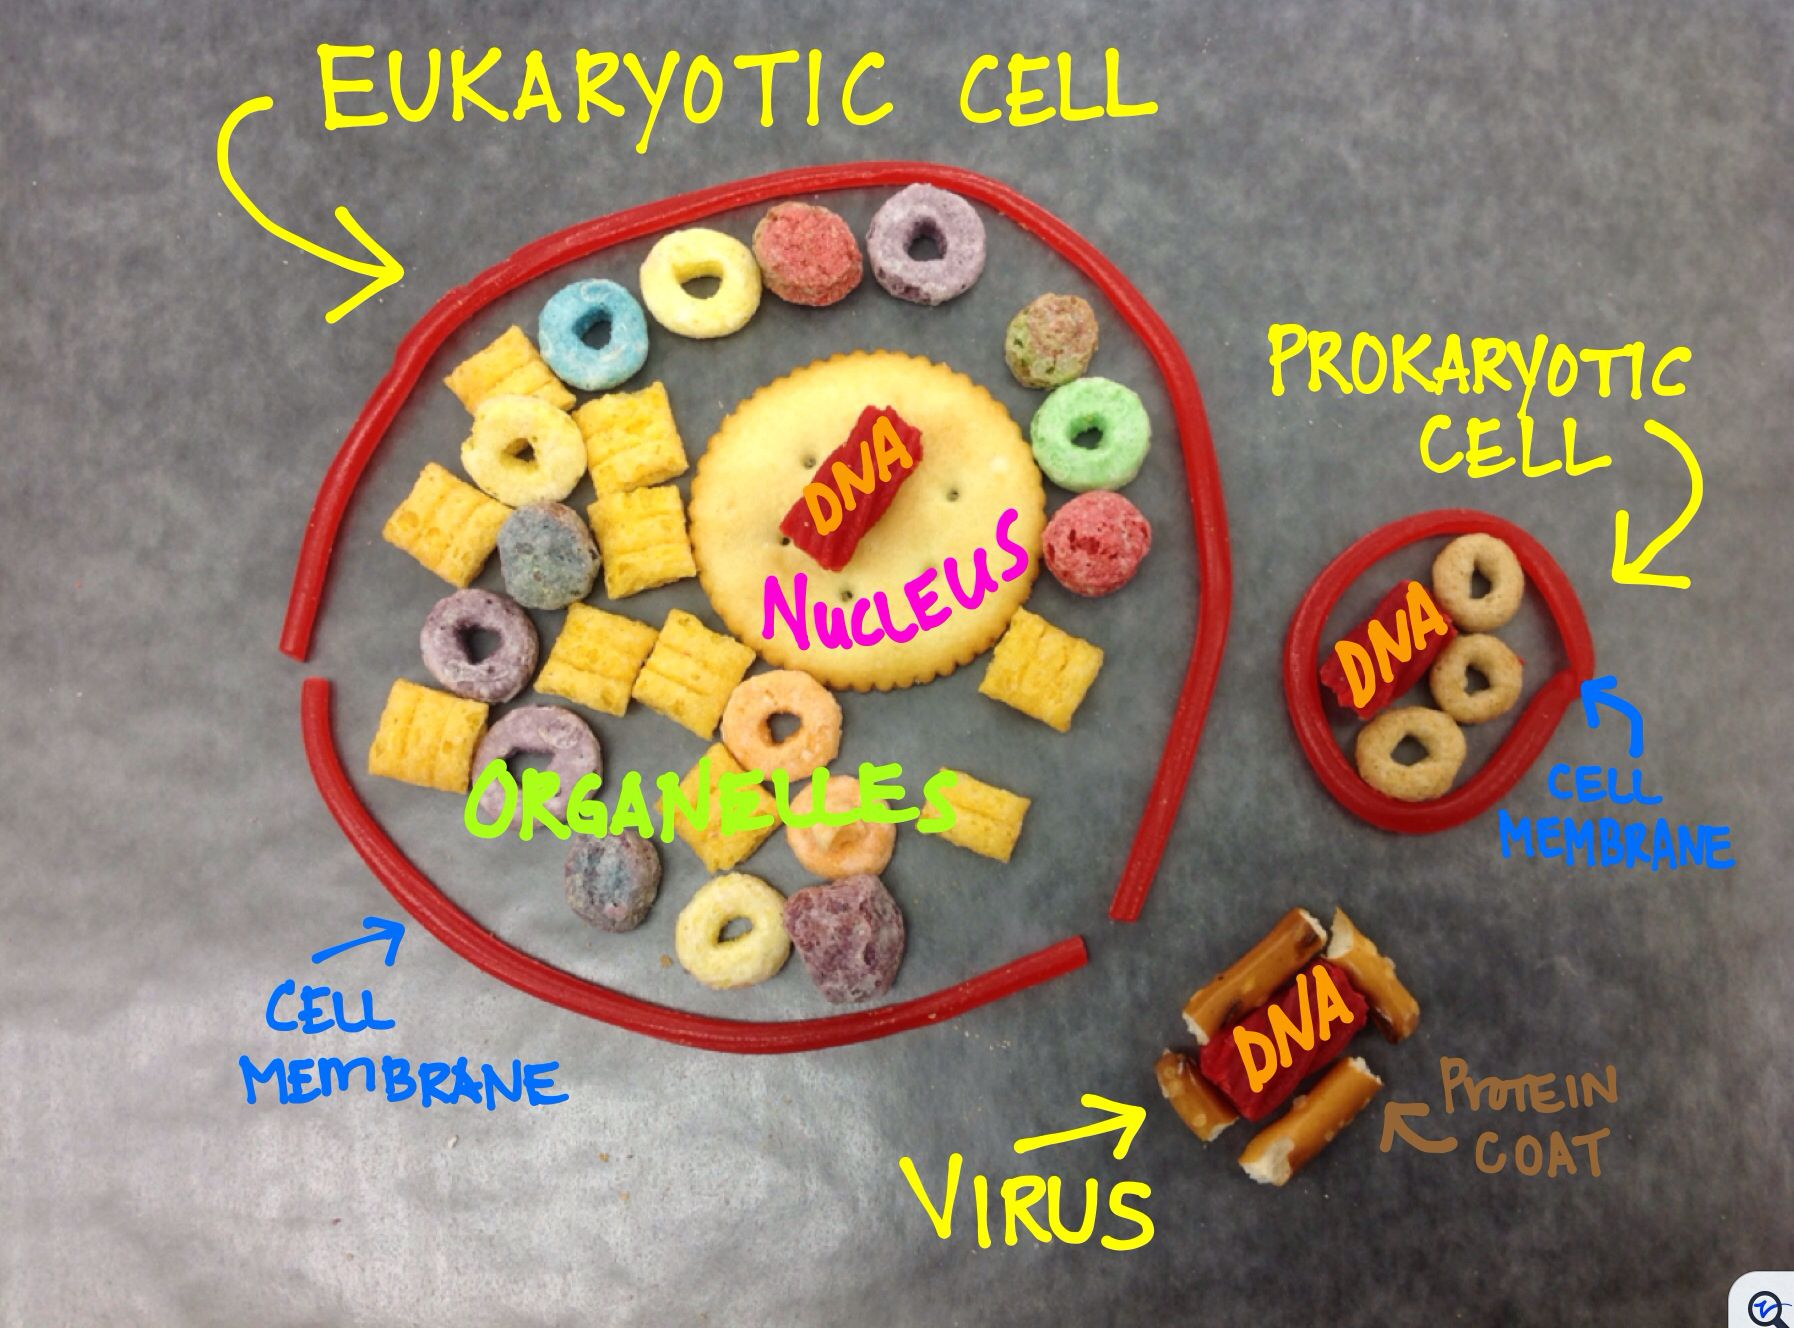 Simple Edible Pro Euk Amp Virus Models I Developed This Simple Activity To Visually Reinforce